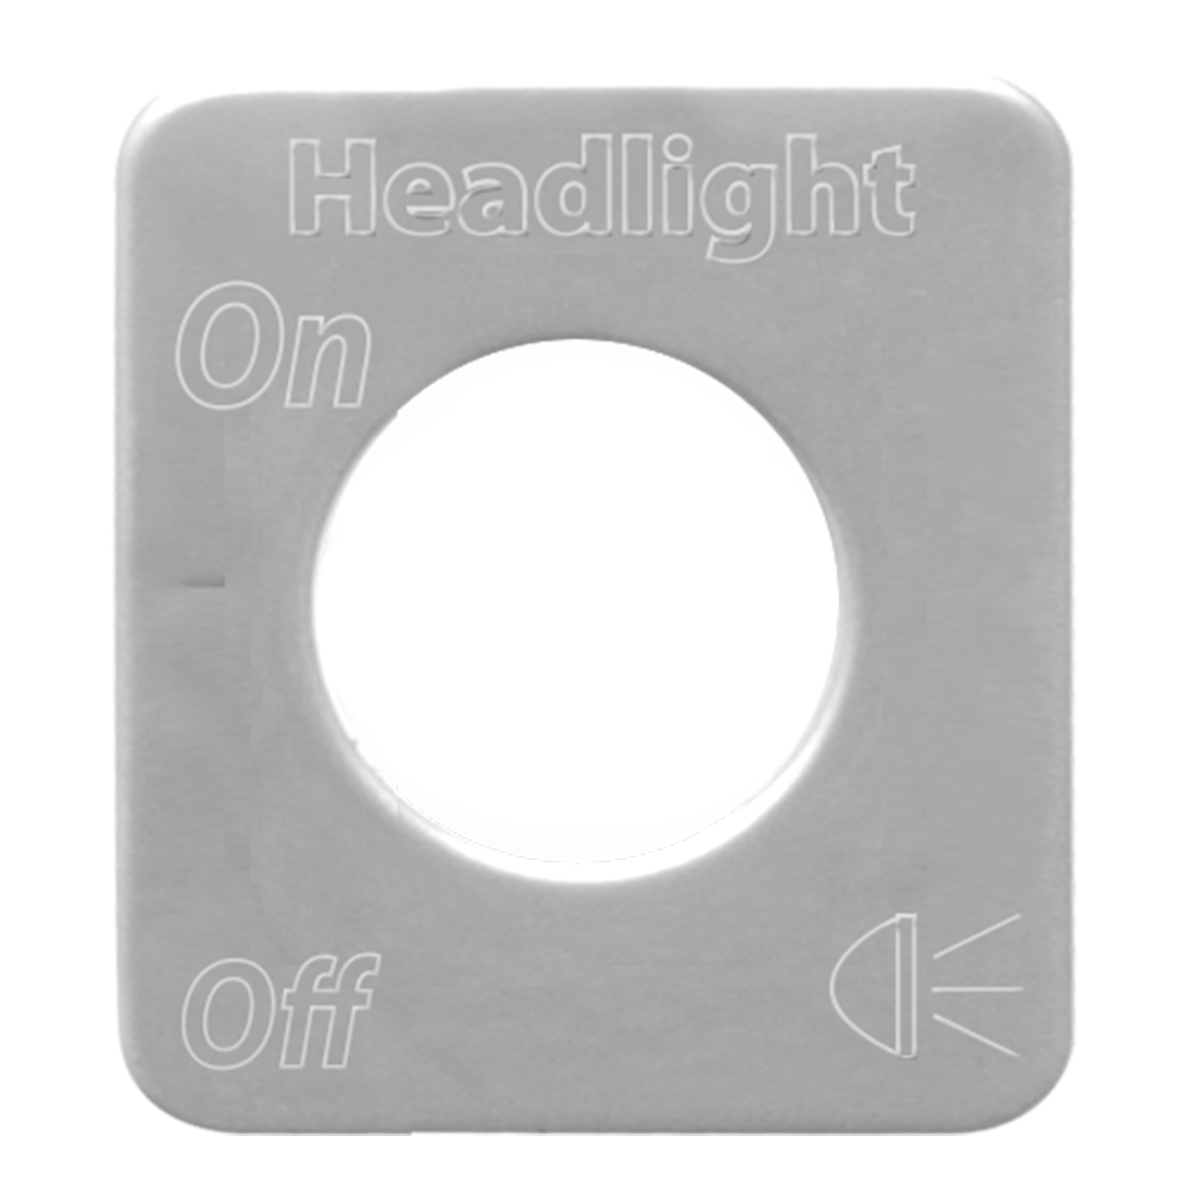 68542 Stainless Steel Headlight Switch Plate for KW